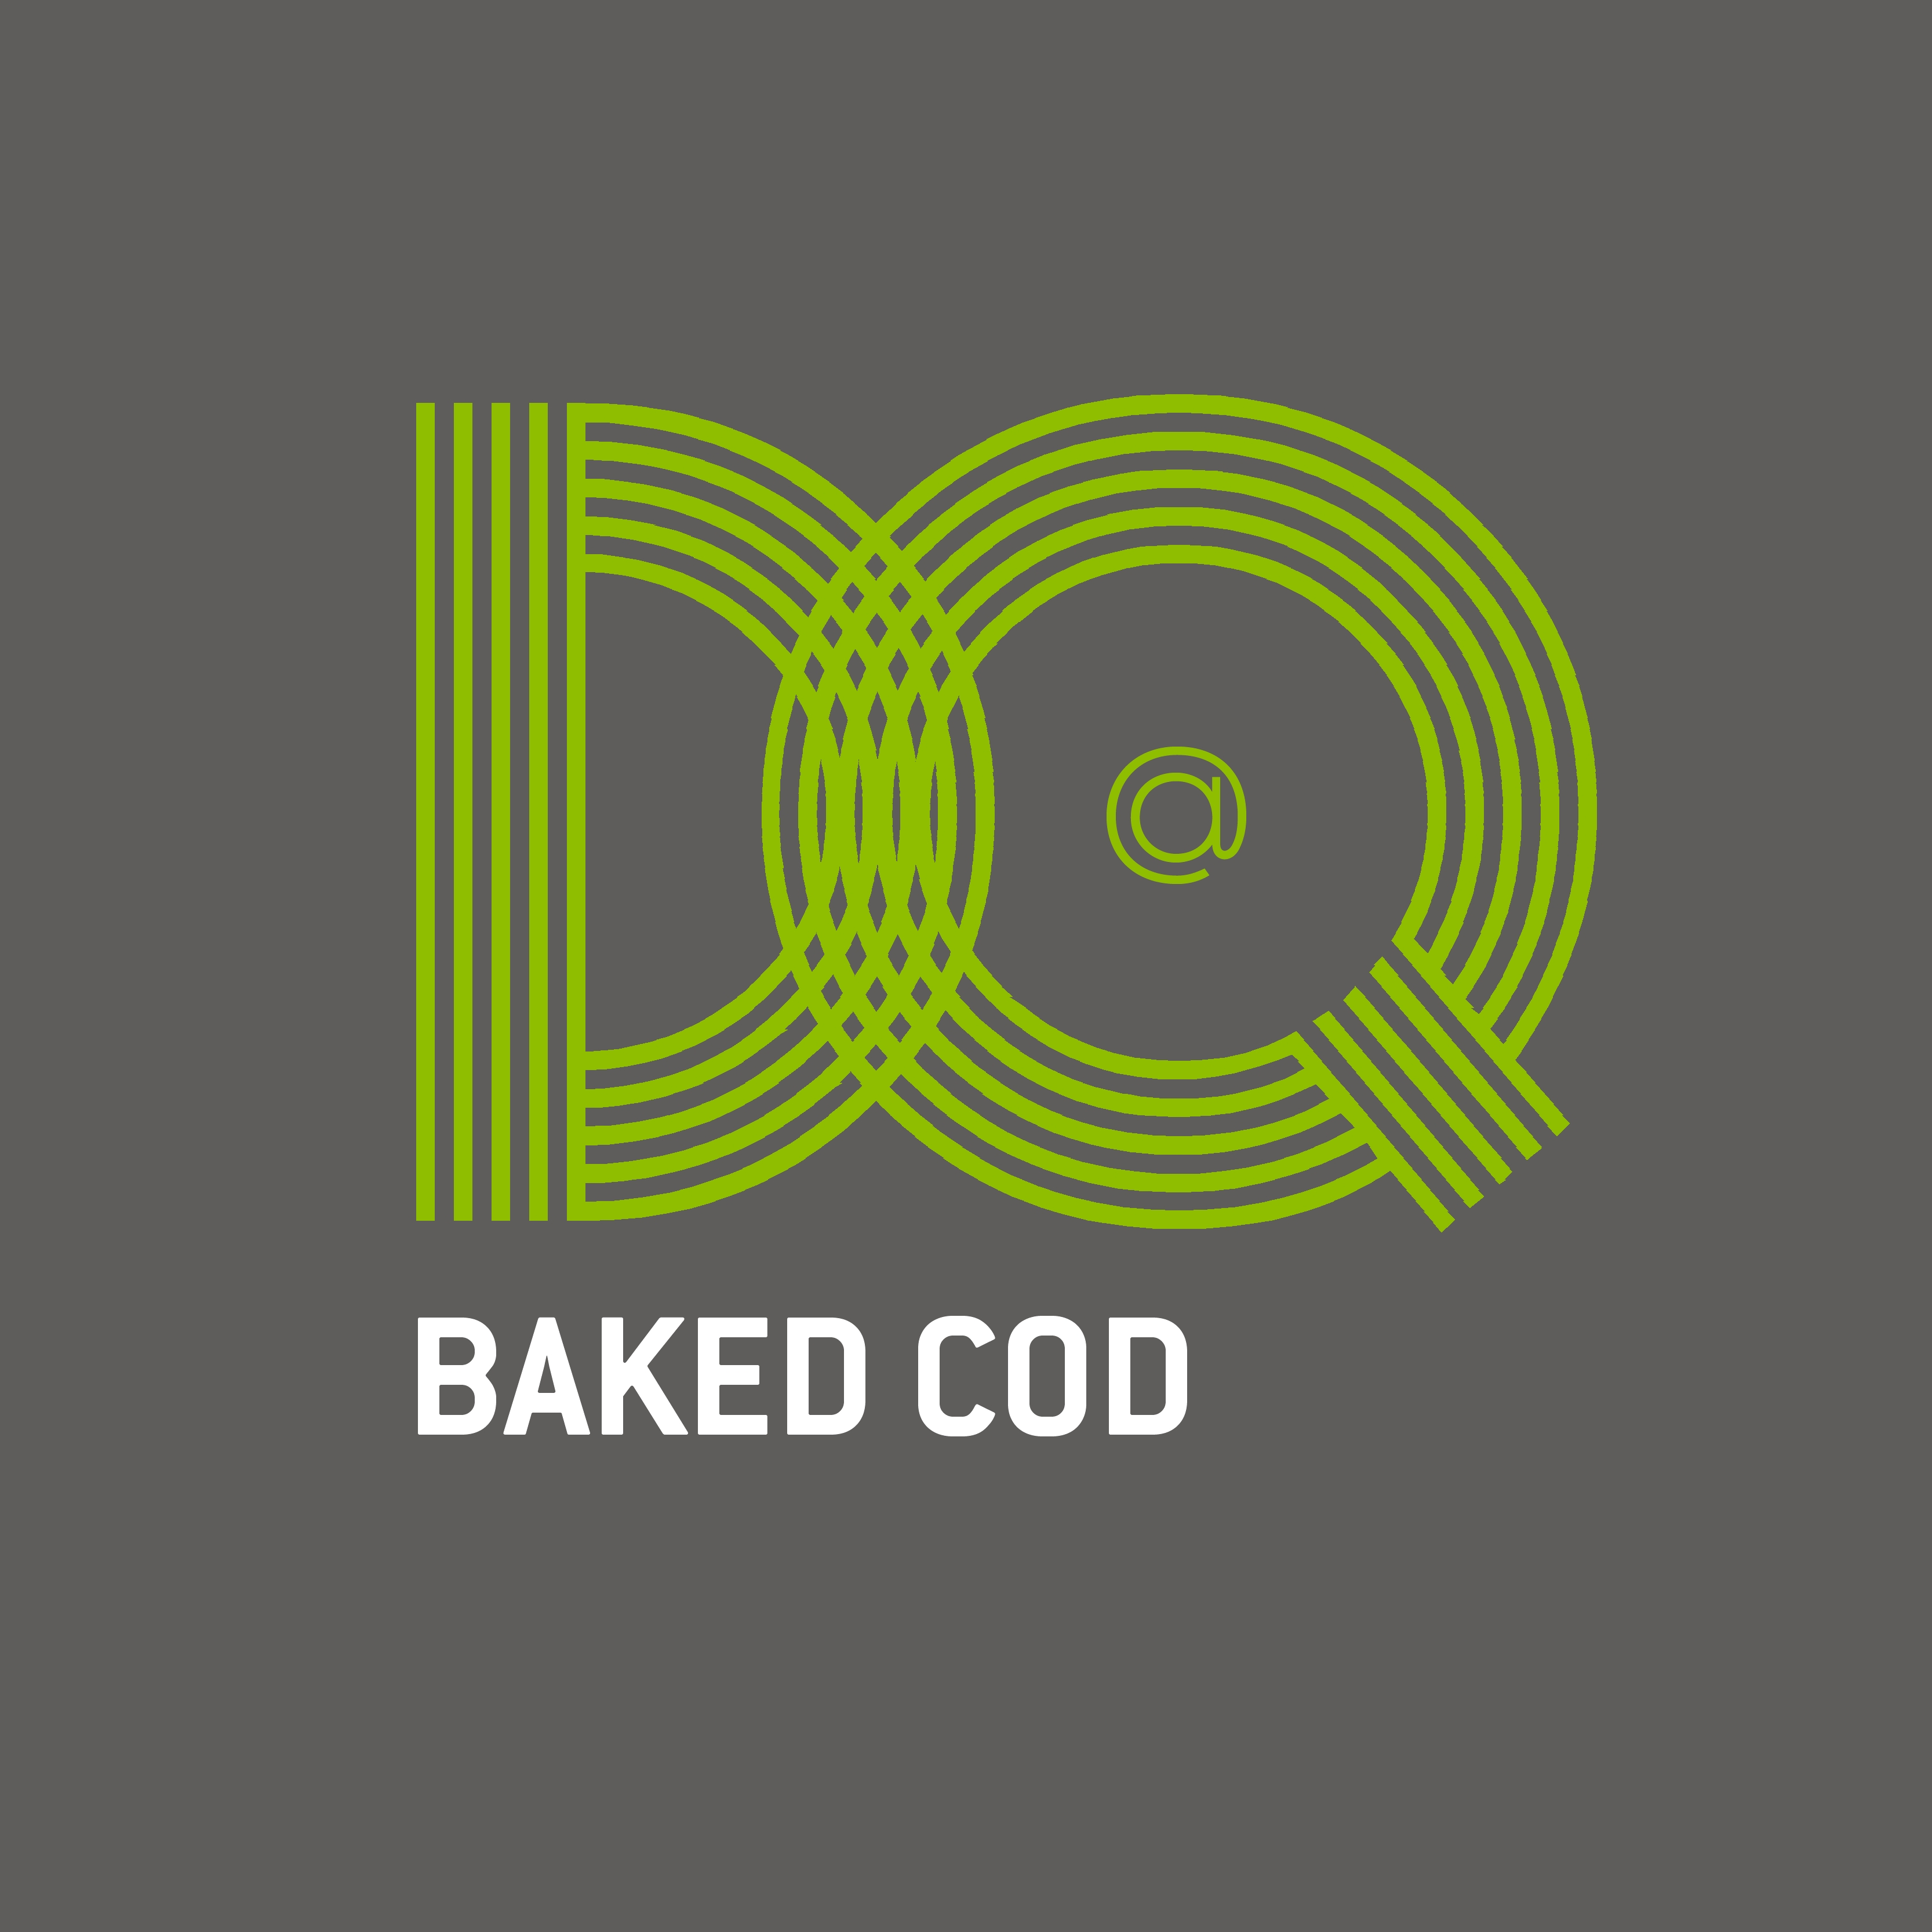 08. DQ - BAKED COD